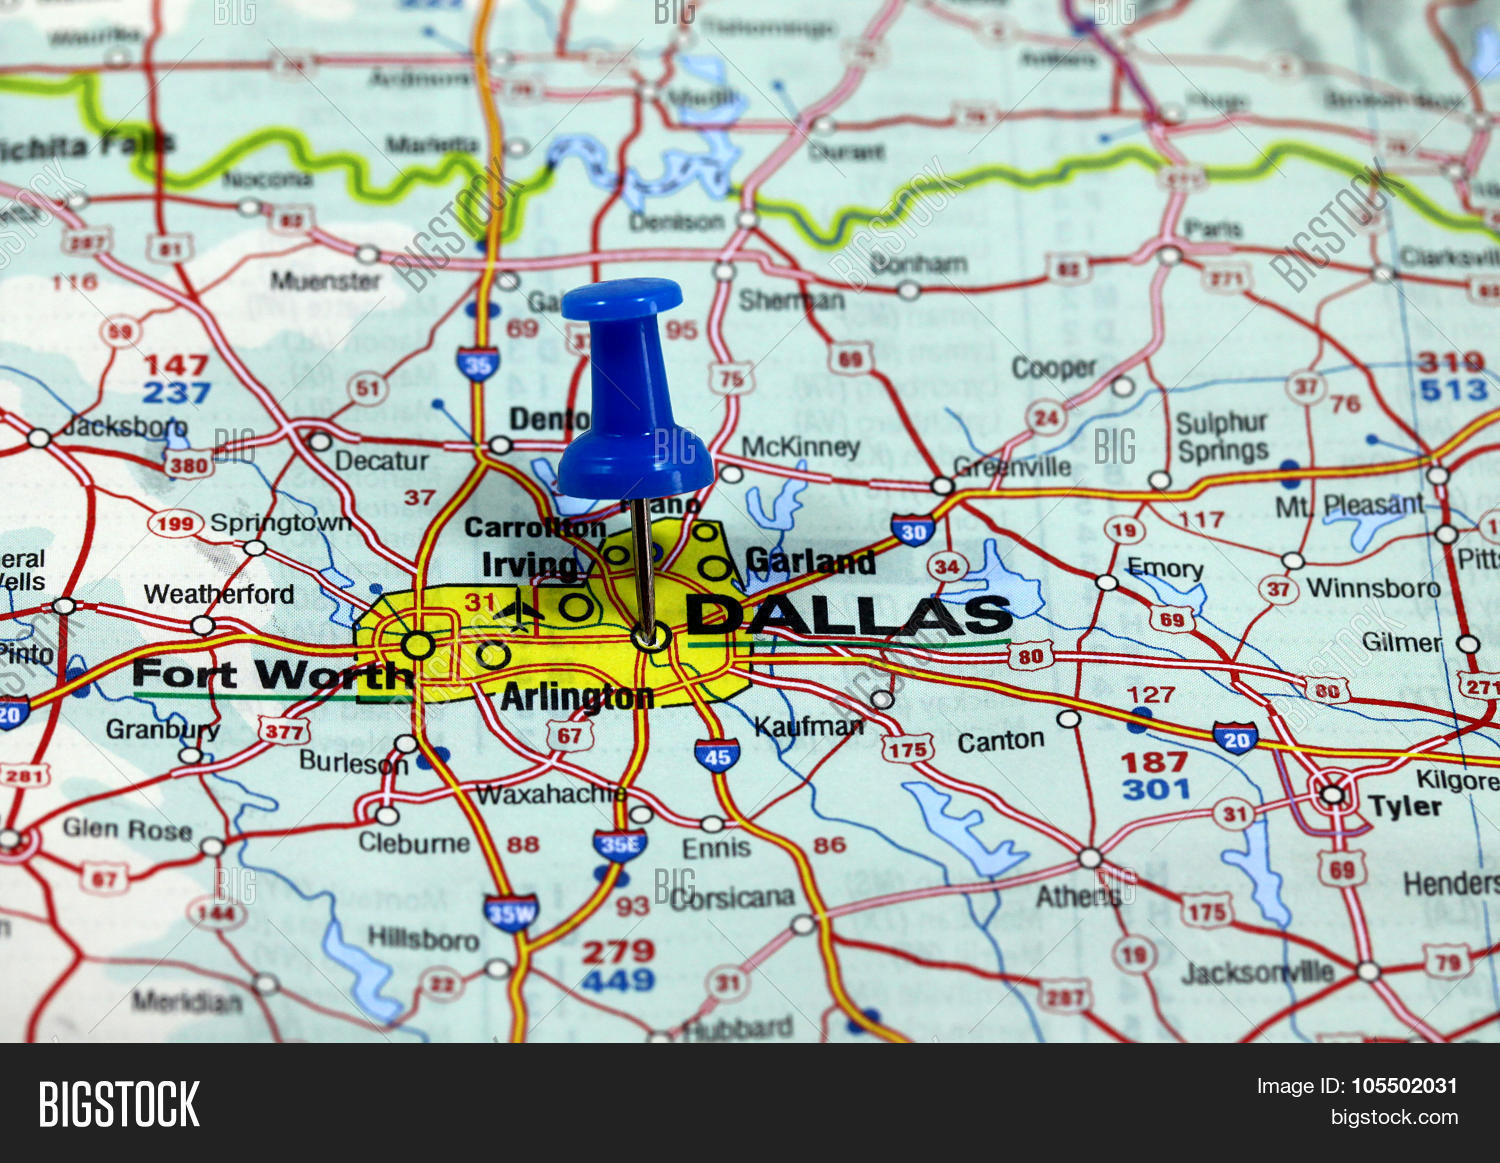 Map Pin Point Dallas Image & Photo (Free Trial) | Bigstock Dallas In Usa Map on